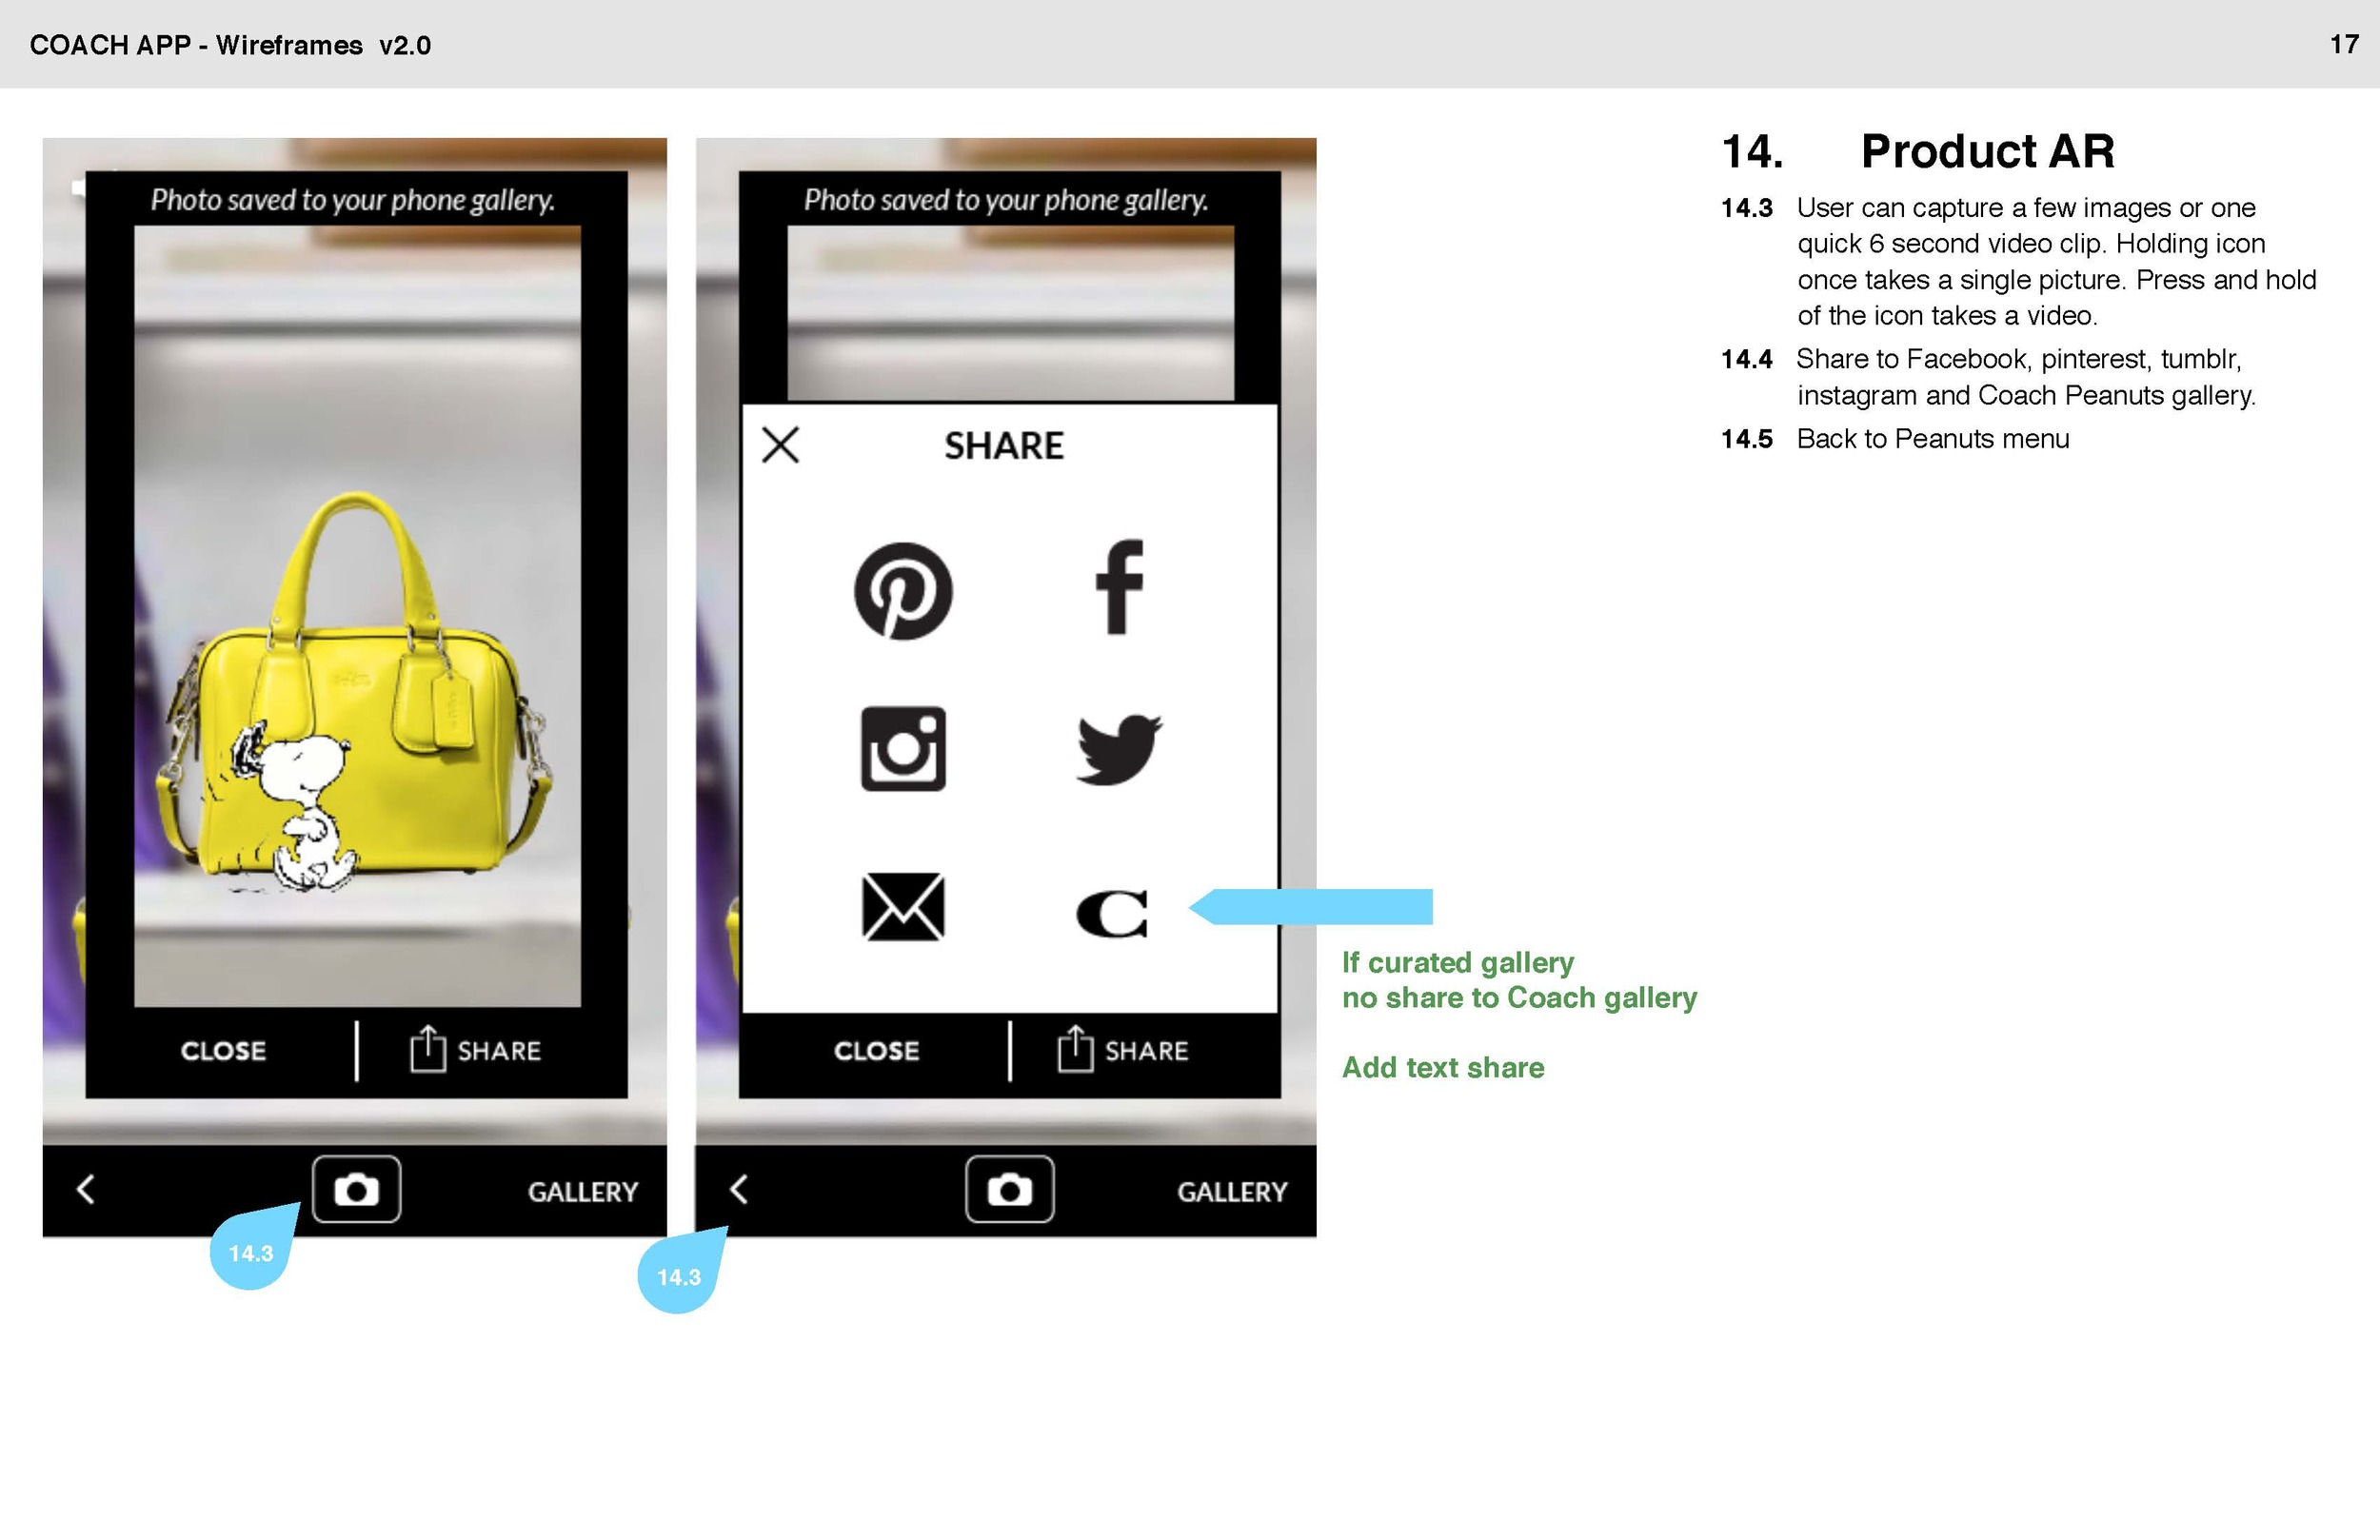 Coach-App-requirements-v2.1_Page_17.jpg